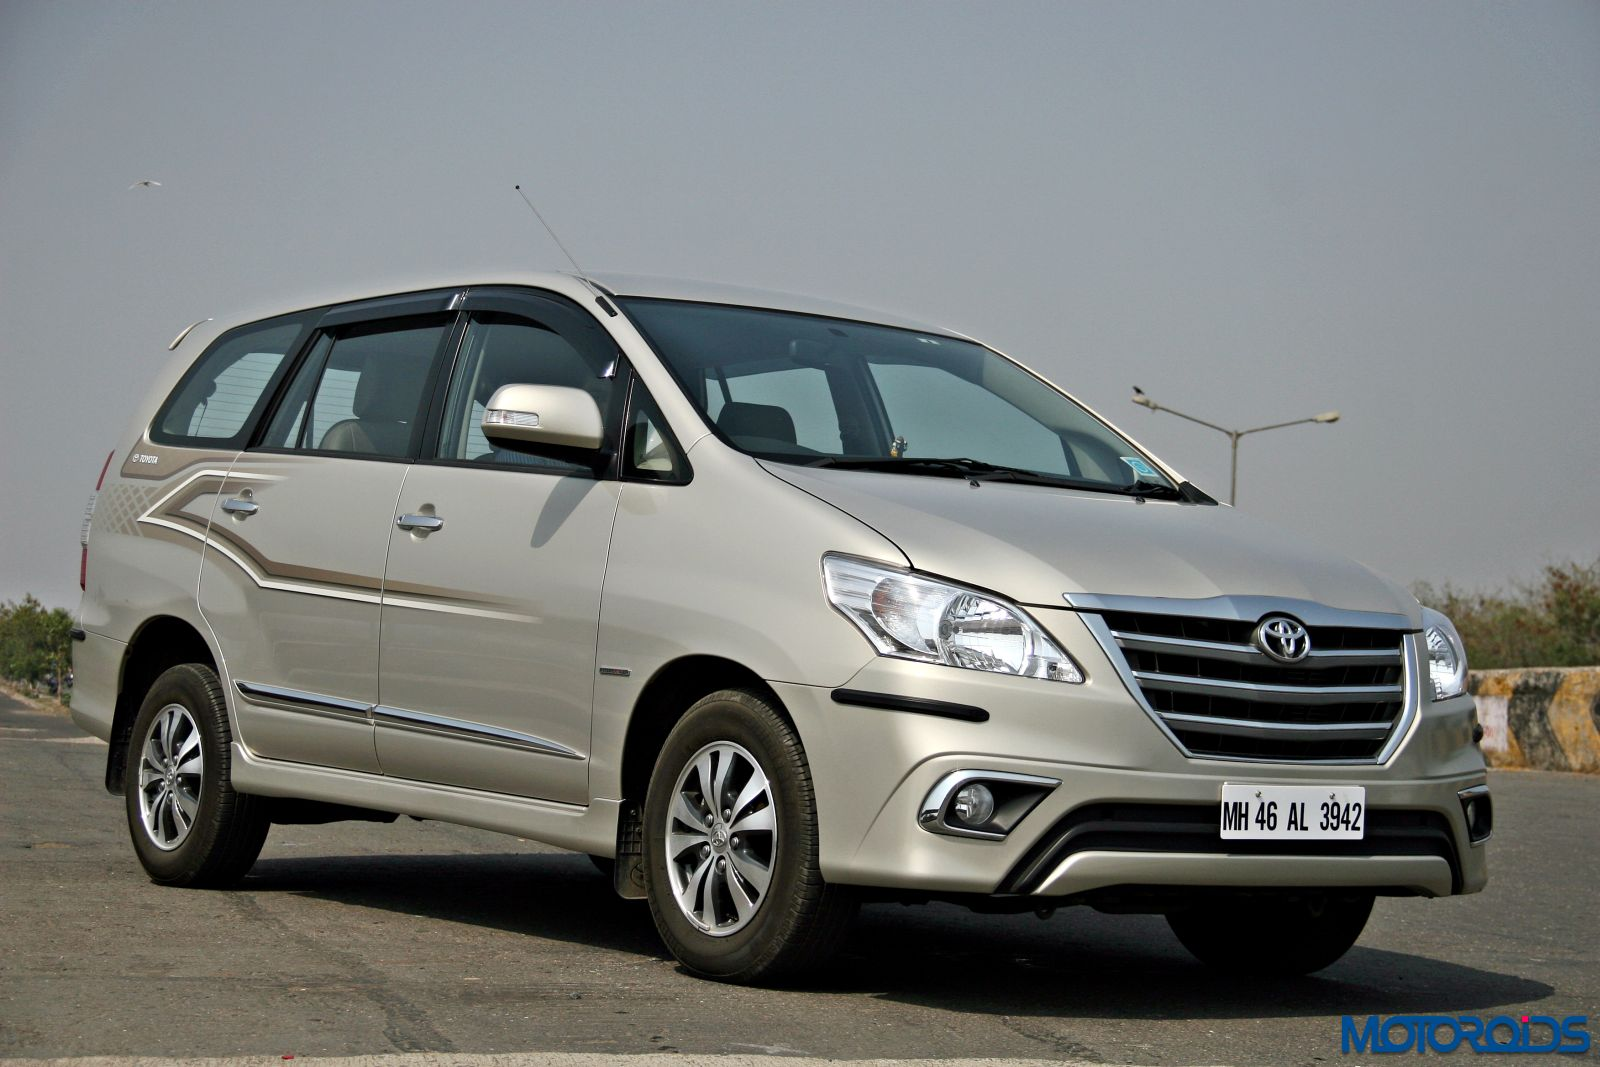 tripathi at april 30 2015 in reviews toyota toyota innova 2 comments